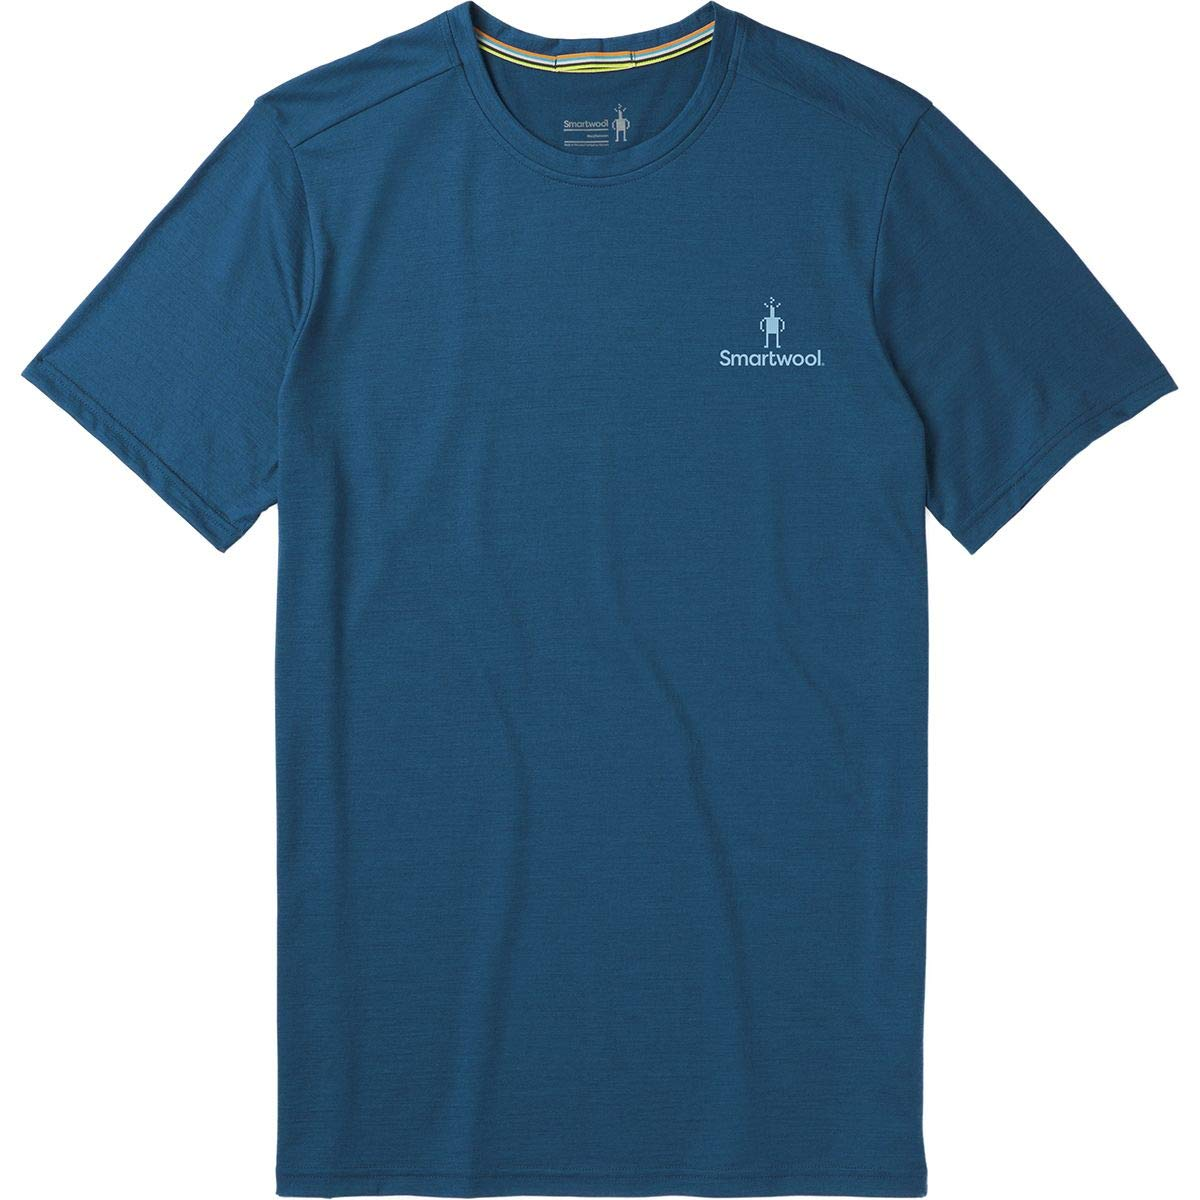 product image of a blue t shirt from smartwool on white background